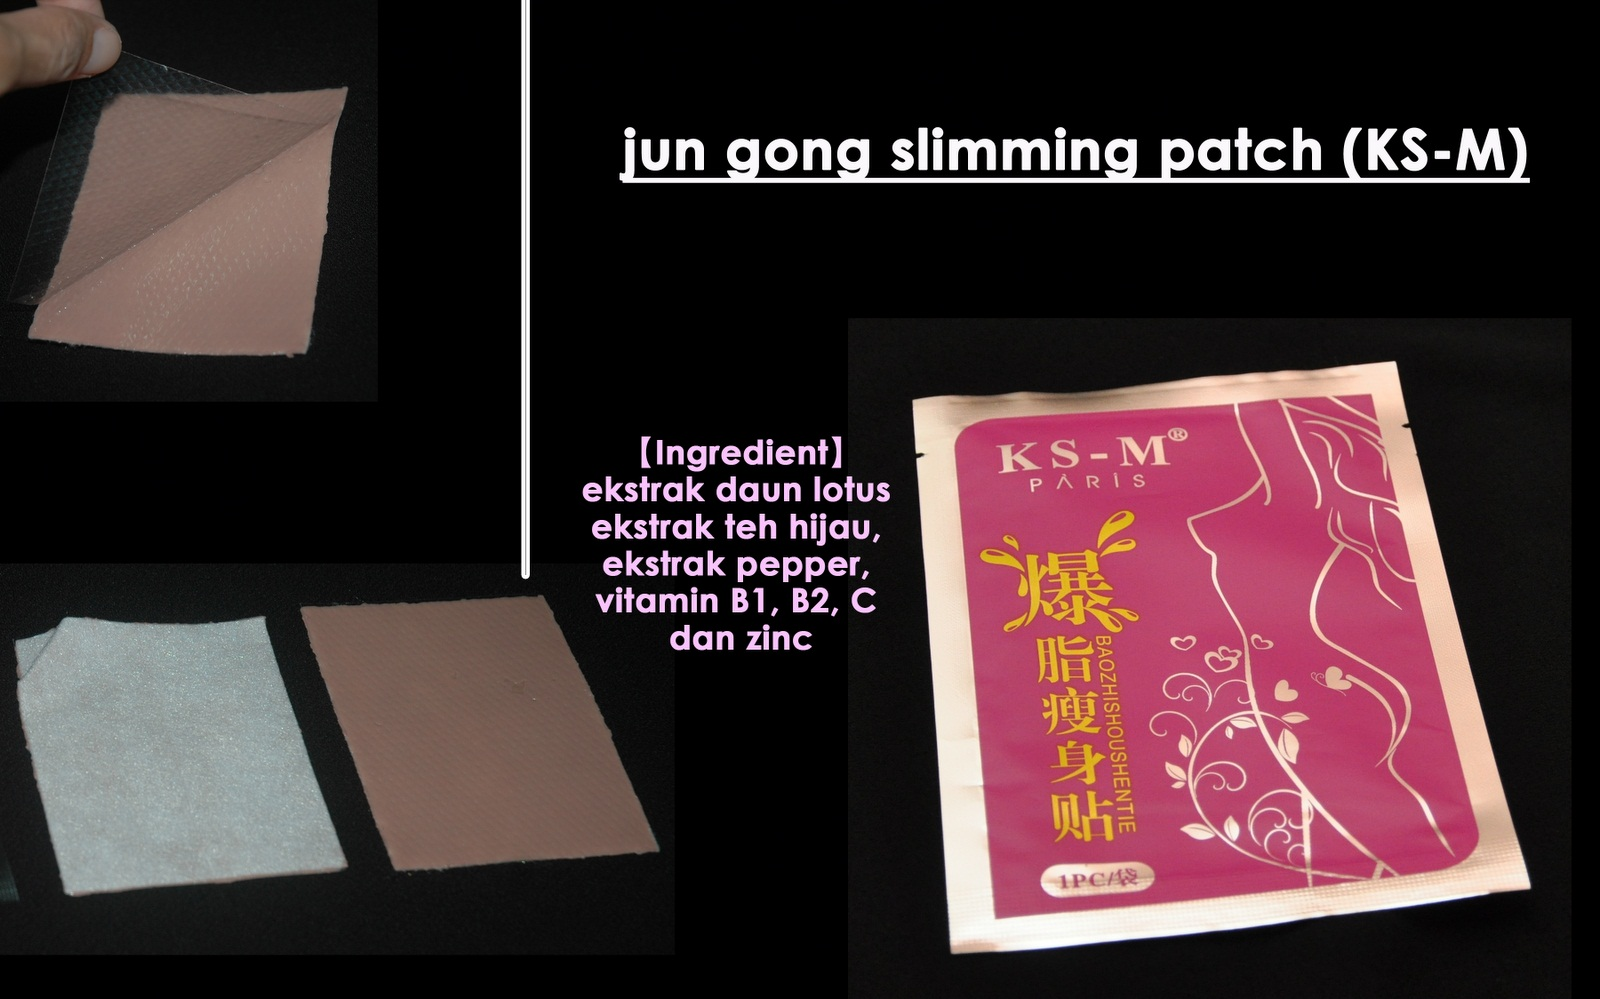 Jun gong slimming patch murahimu